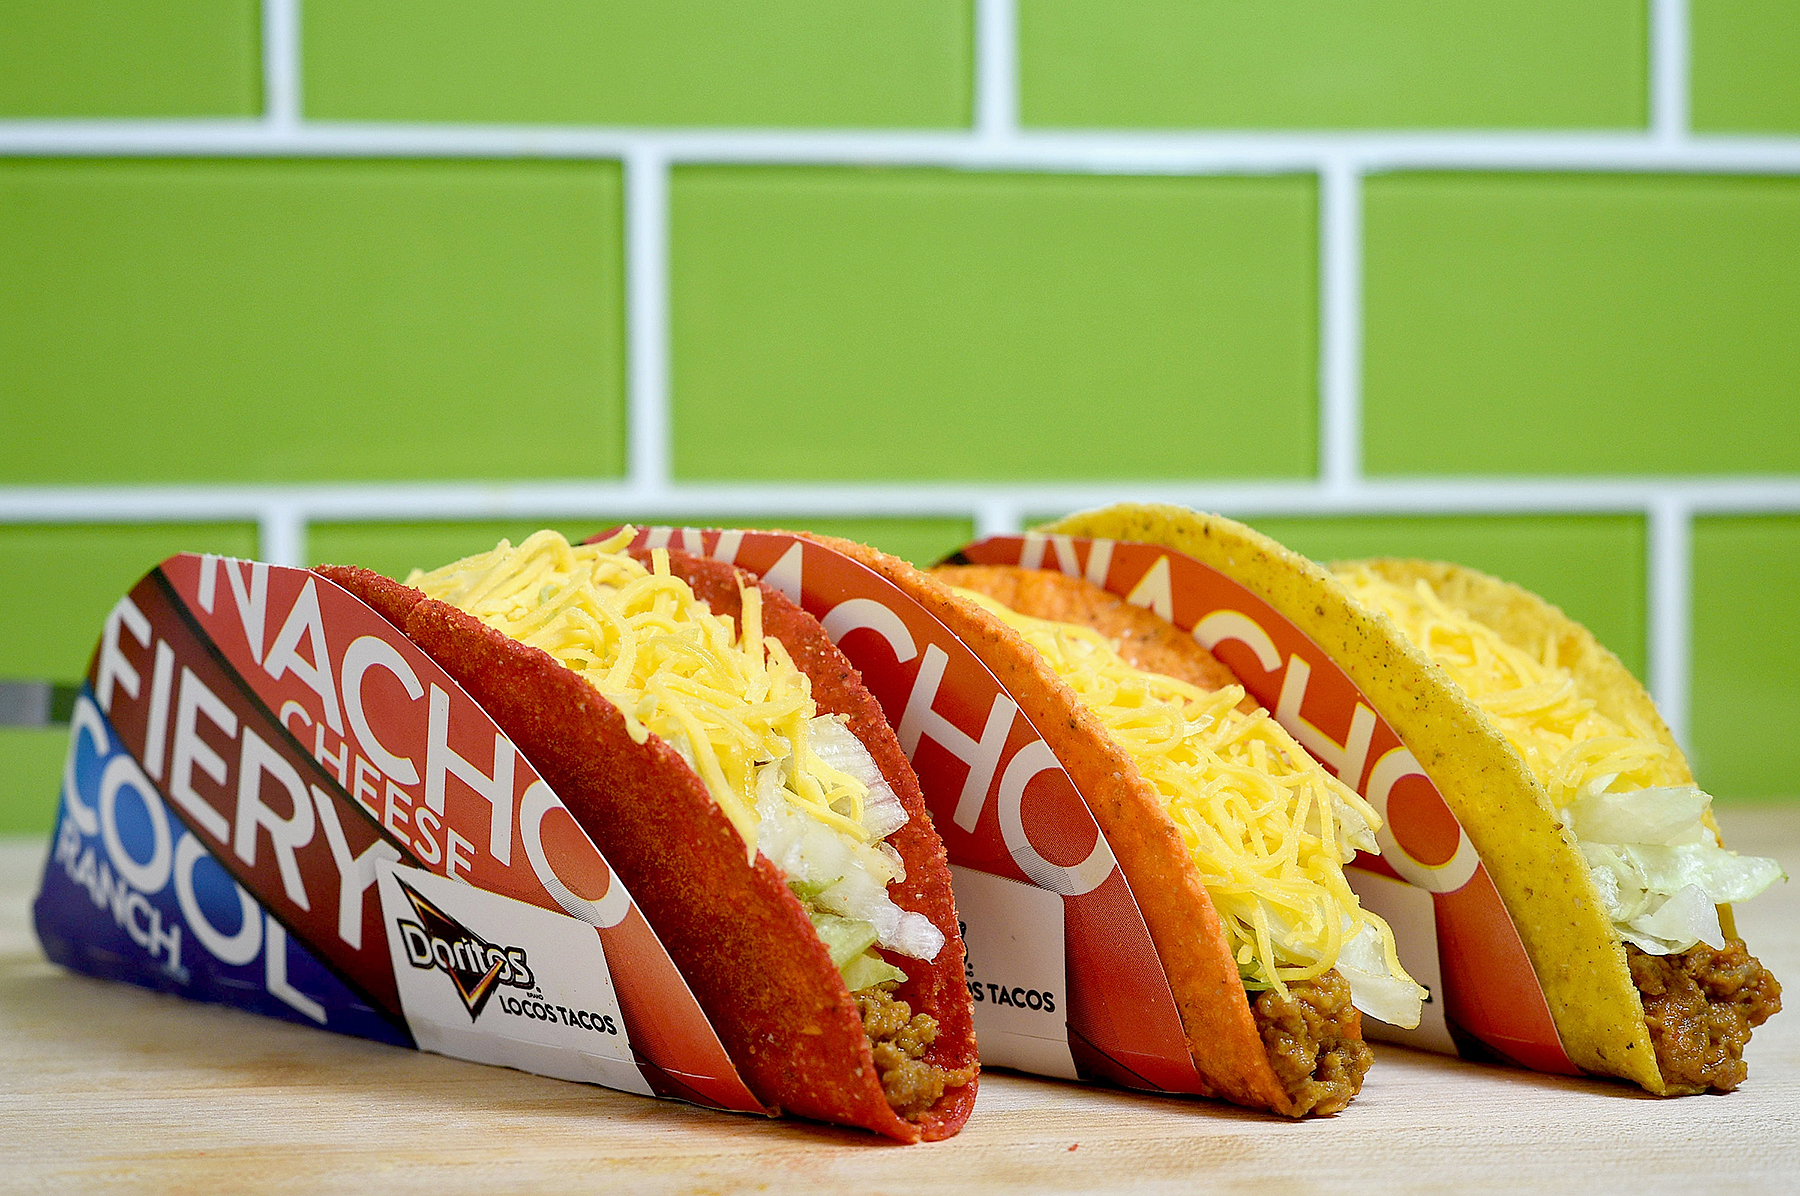 The Doritos Locos Tacos Joshua Blanchard  Getty Images for Taco Bell